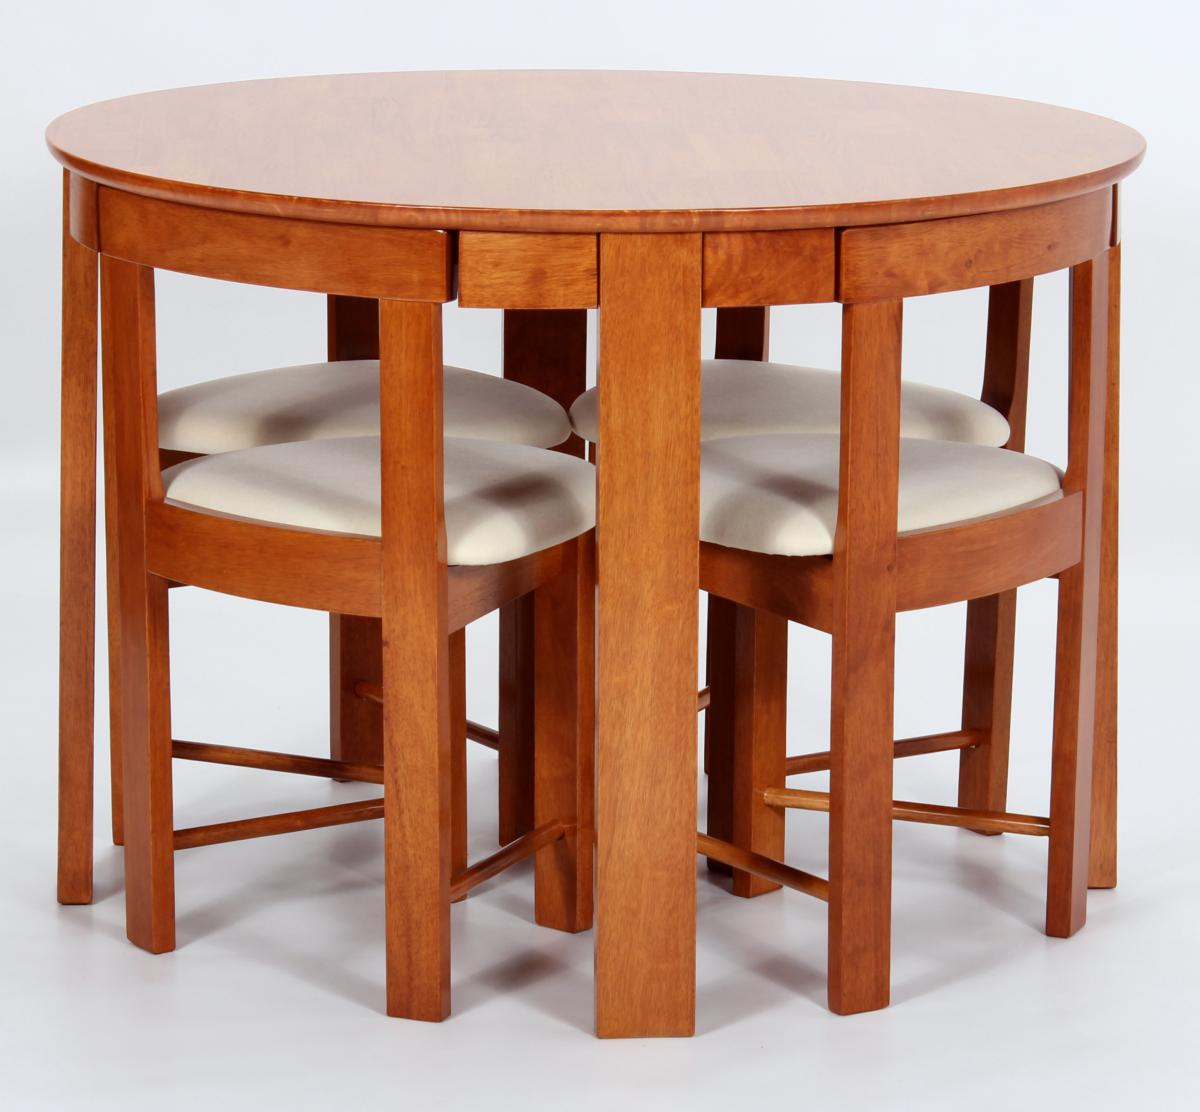 Compact Dining Table And Chairs: Compact Stowaway Round Brown Dining Table Set With 4